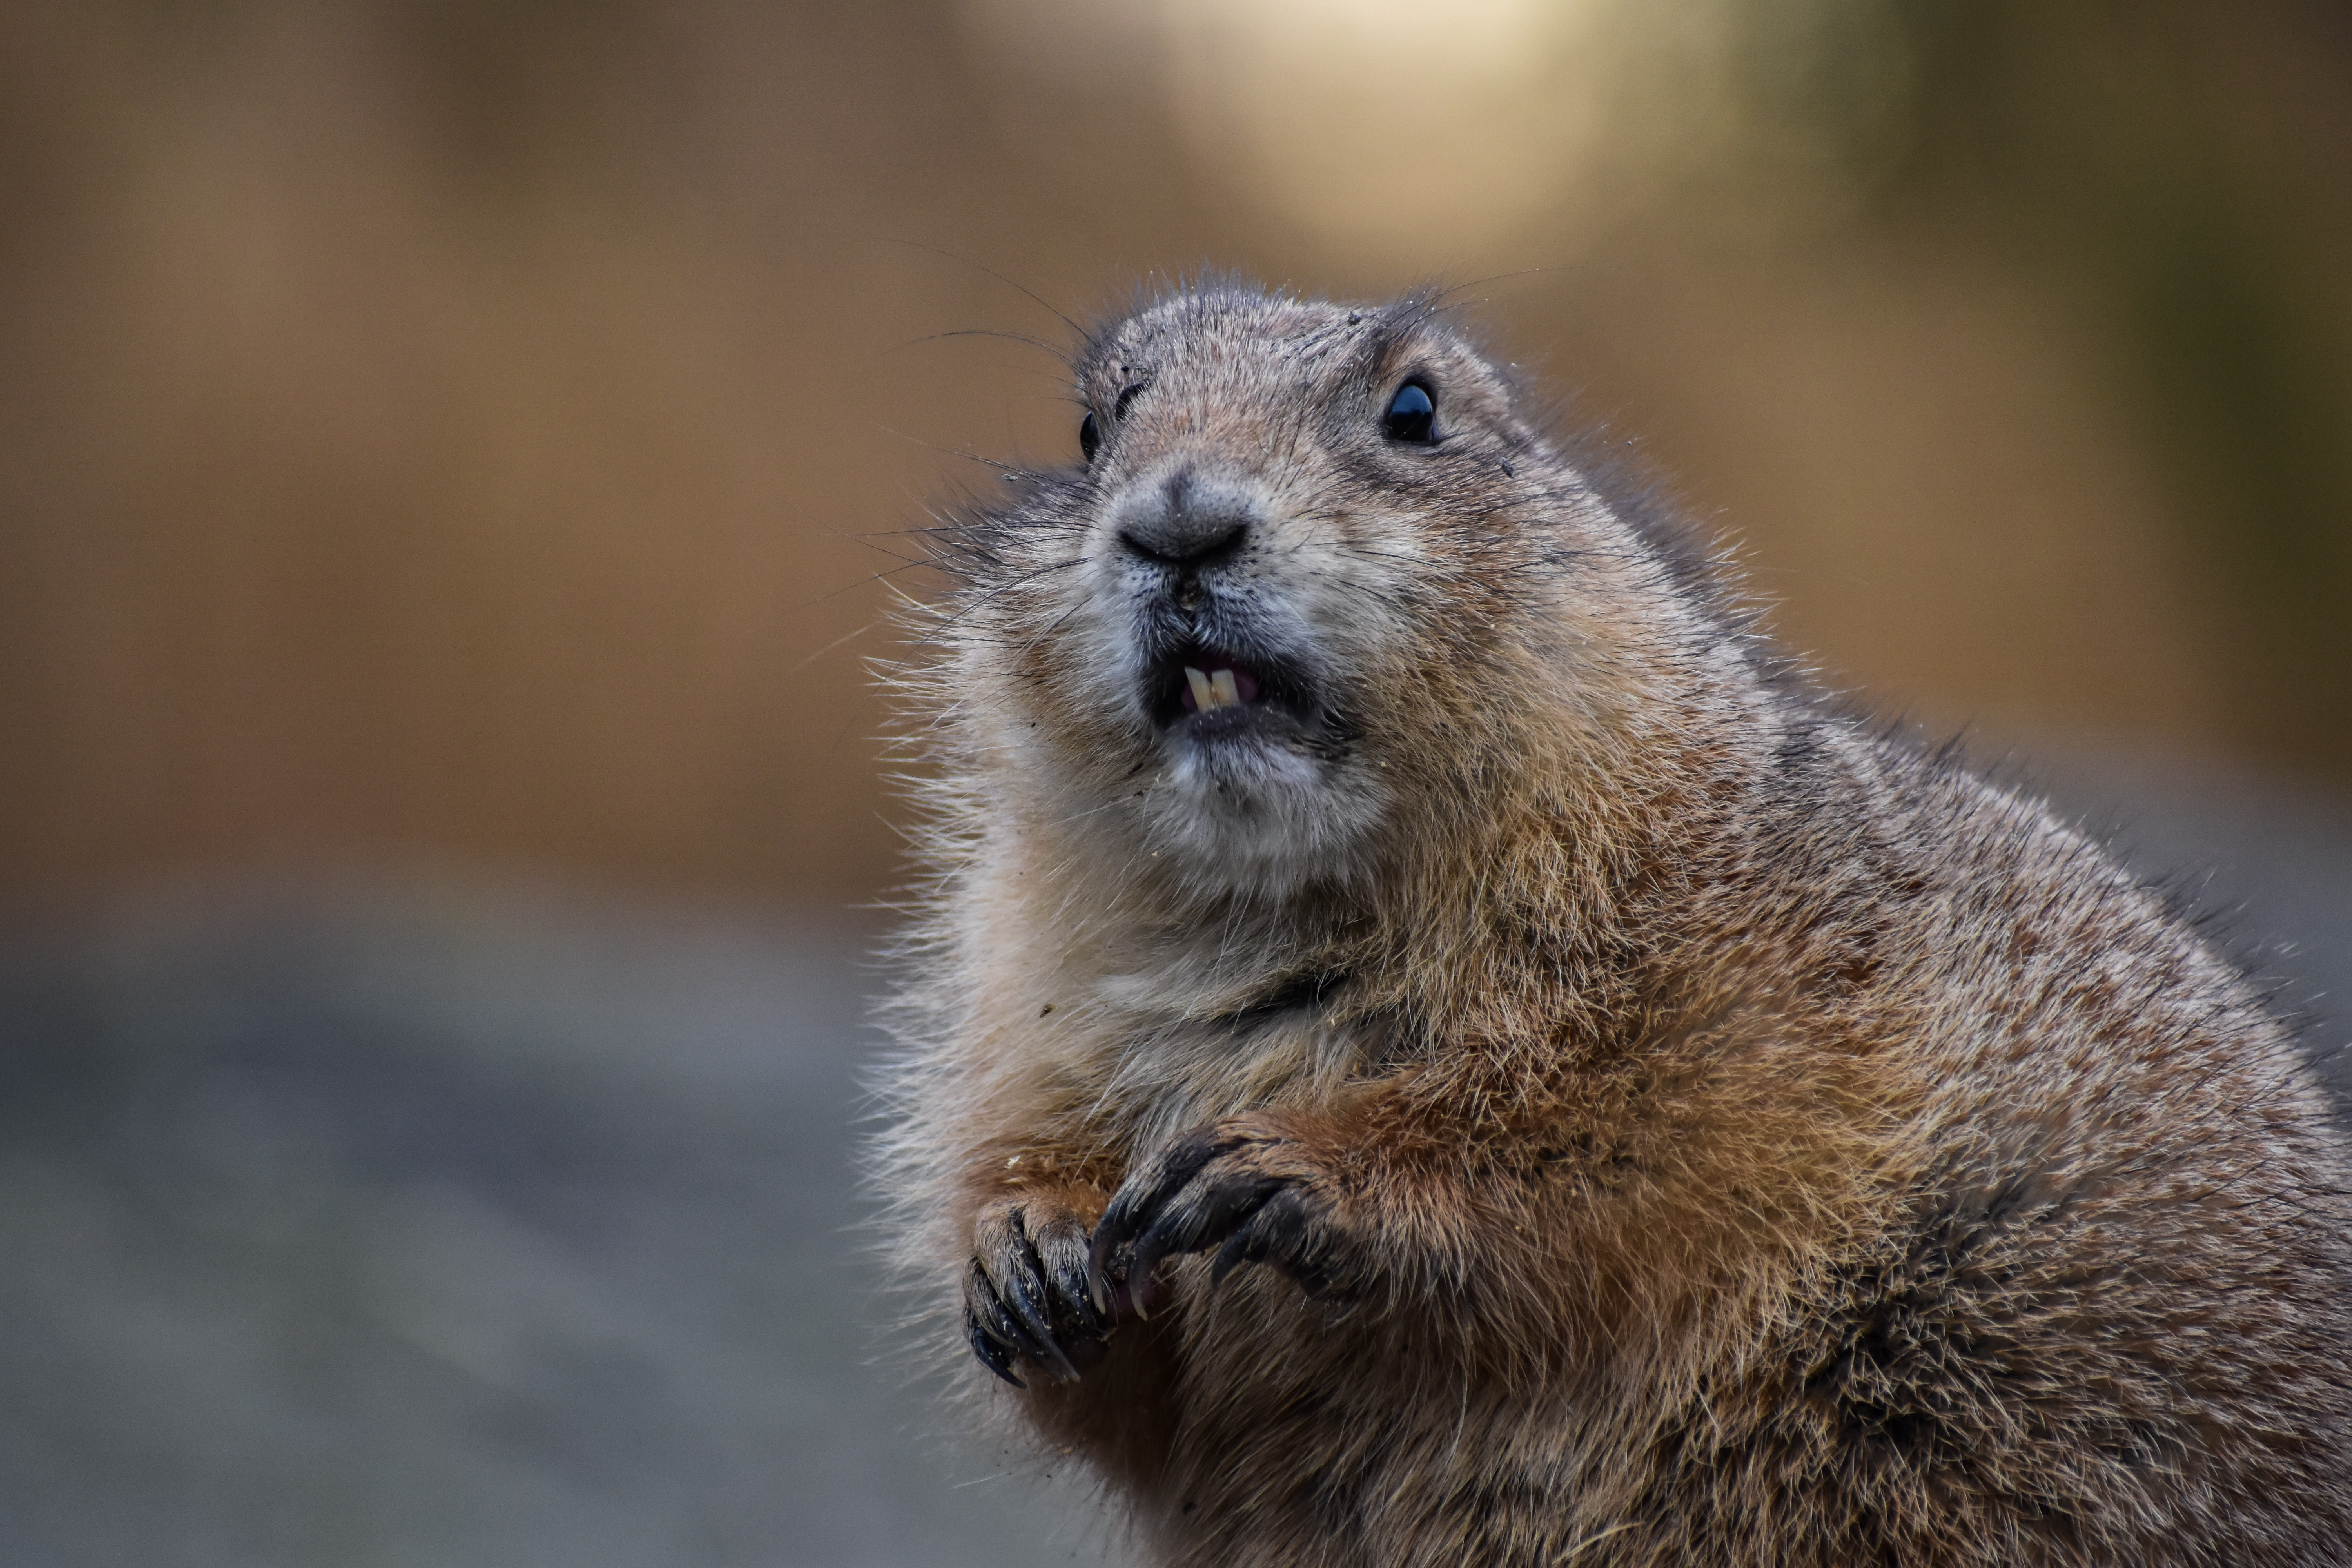 126312 download wallpaper Animals, Beaver, Rodent, Animal, Brown screensavers and pictures for free